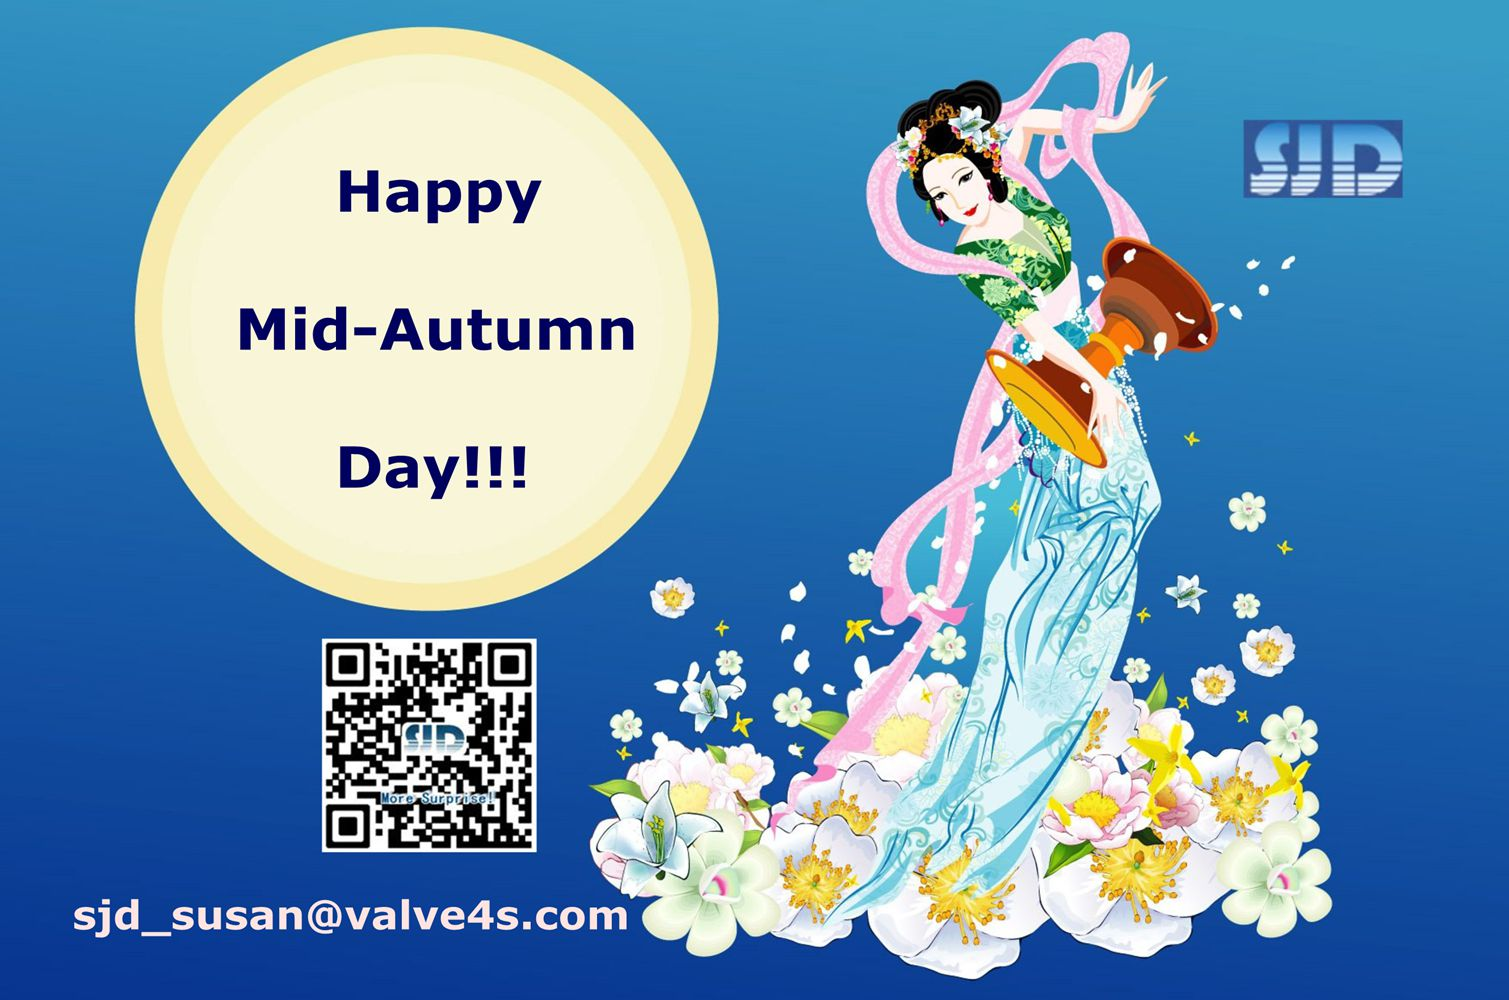 2016 chinese mid autumn festival liaoning sjd trading co ltd httpslinkedinpulse2016 chinese mid autumn festival susan yaotrkhp feed article title like top things to do during chinese moon festival kristyandbryce Choice Image